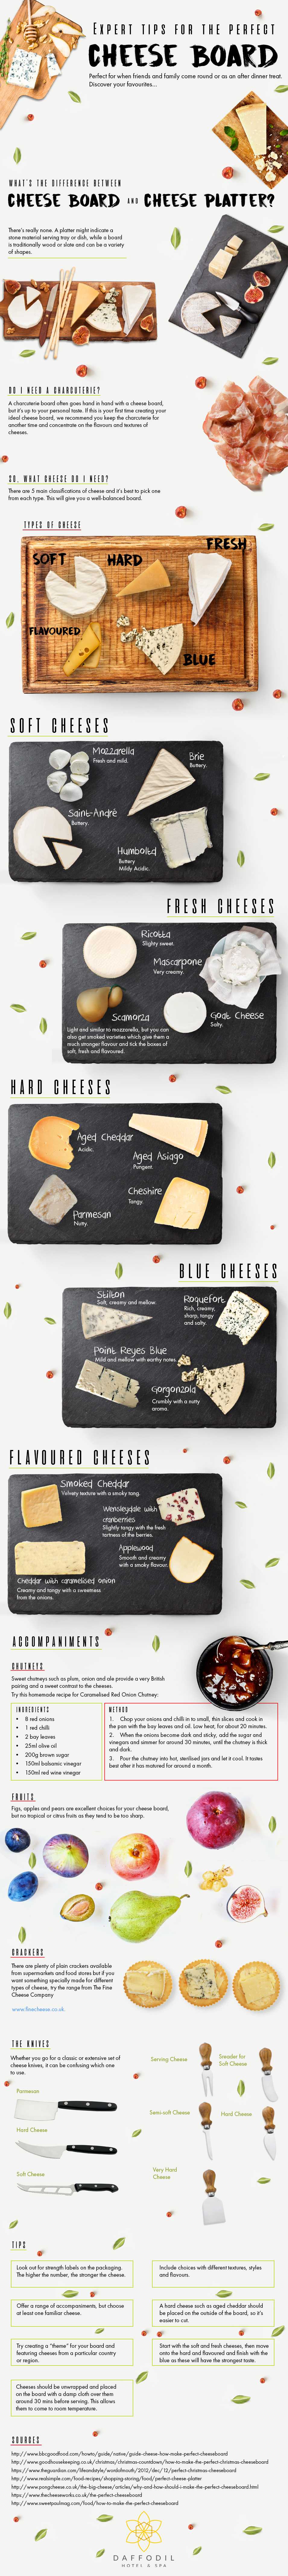 A Guide To Creating The Ultimate Cheese Board - Infographic